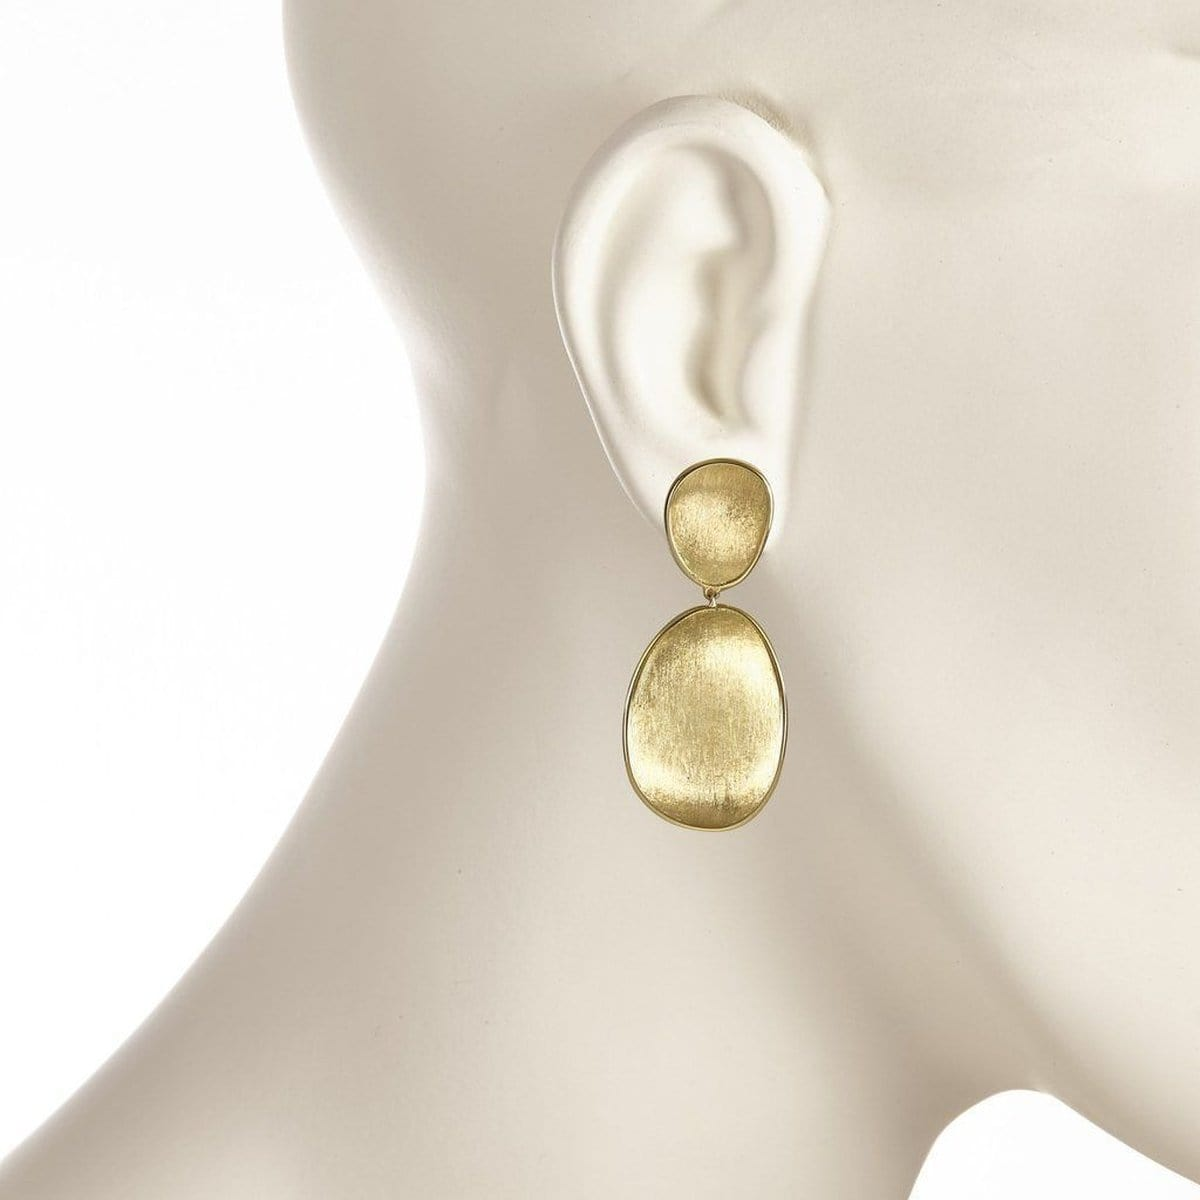 18K Lunaria Small Double Drop Earrings - OB1345 Y-Marco Bicego-Renee Taylor Gallery